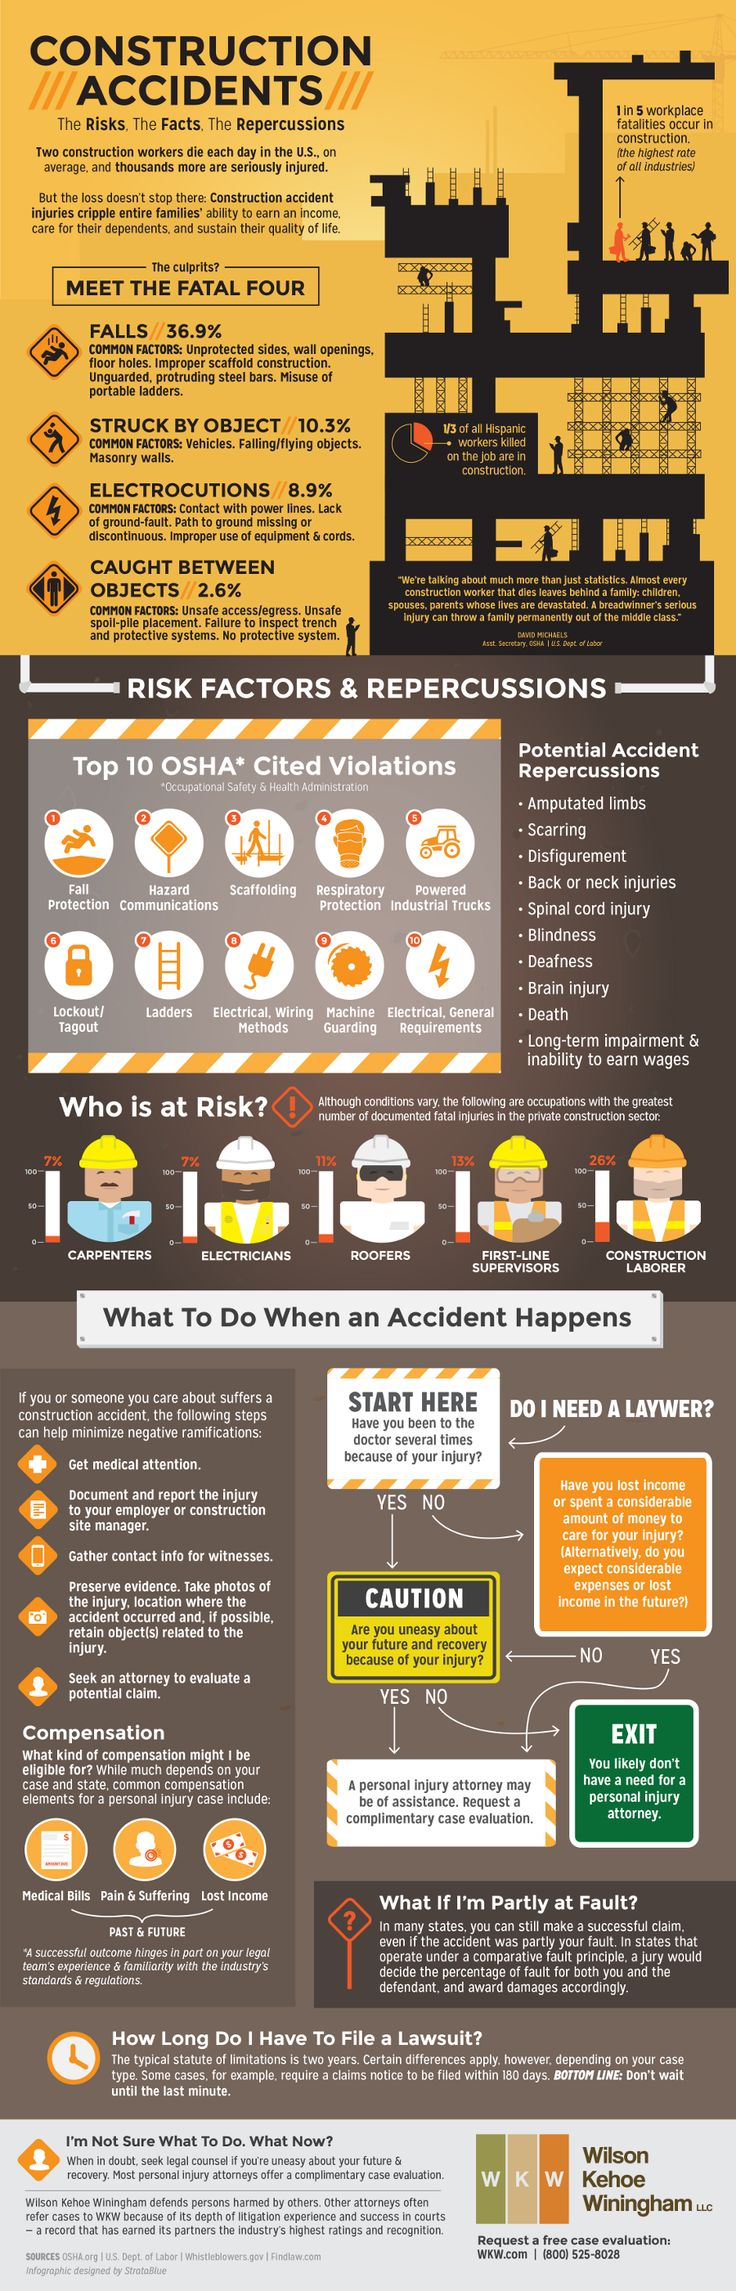 Best 25 Construction Safety Ideas On Pinterest Workplace Safety Tips Workplace Safety And